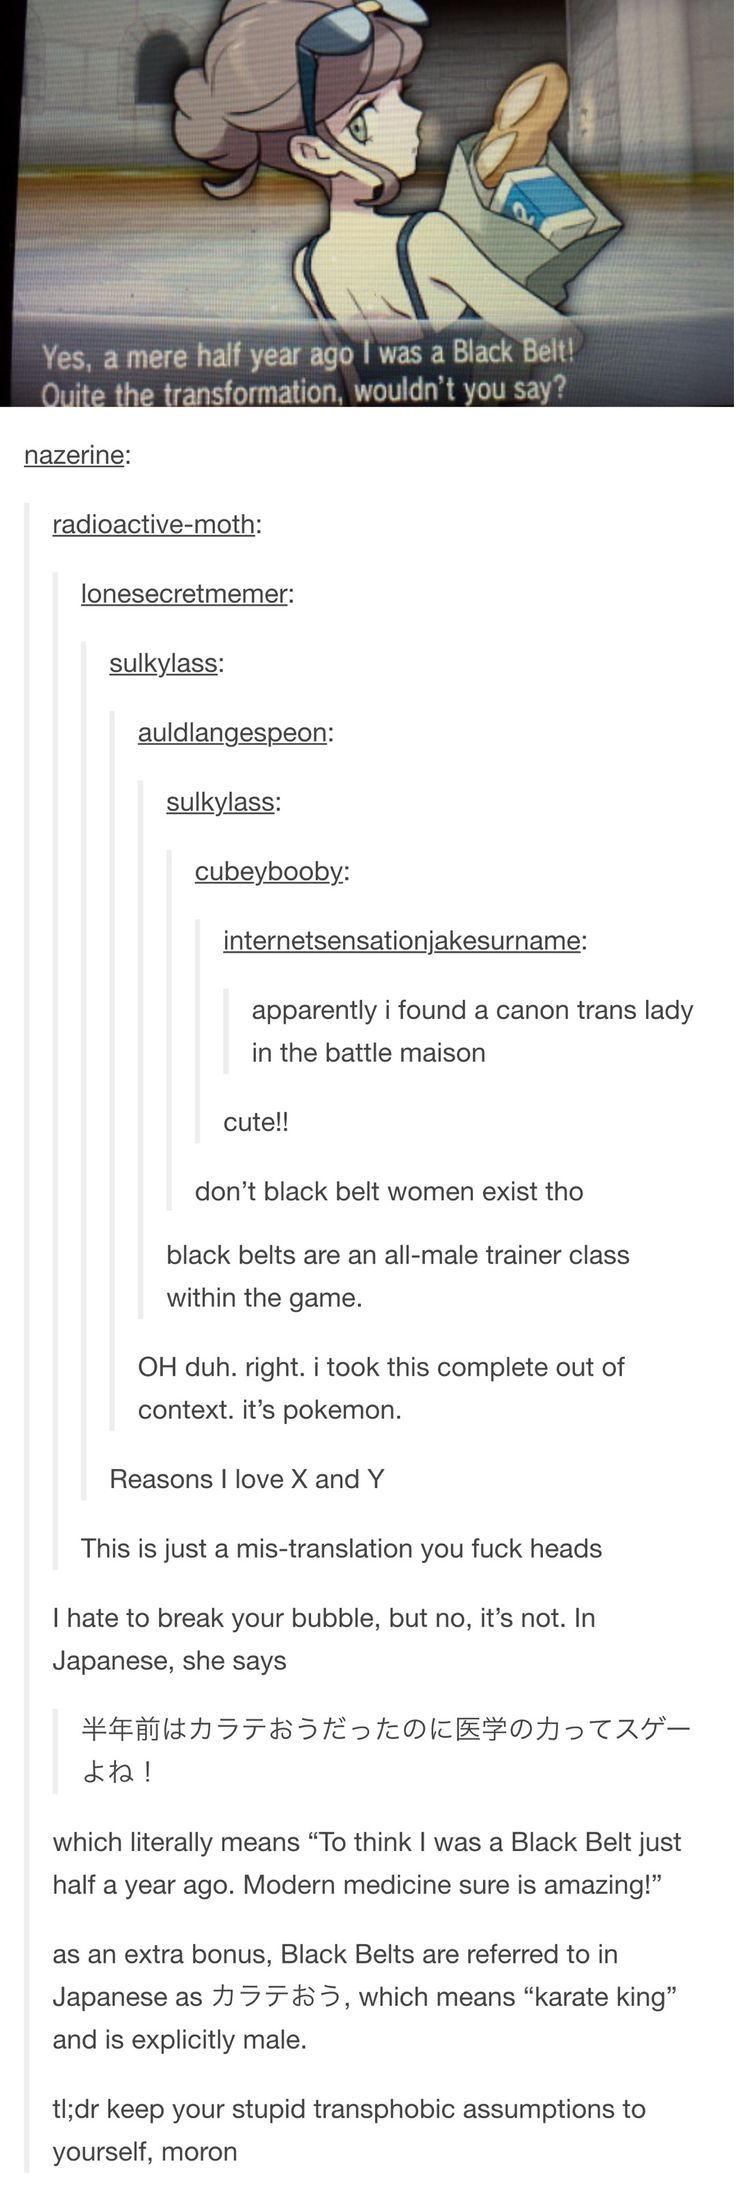 So apparently you can't have any kind of character or story without Tumblr wanting to make it all about the LGBT community. I hate Tumblr and wish that the stupid fake genders would end this is so stupid and there is no way a fucking 4 year old can decide to be trans. Liberals want people to stop labeling them but then fucking MAKE UP fake genders to label themselves and make themselves feel special. Kys